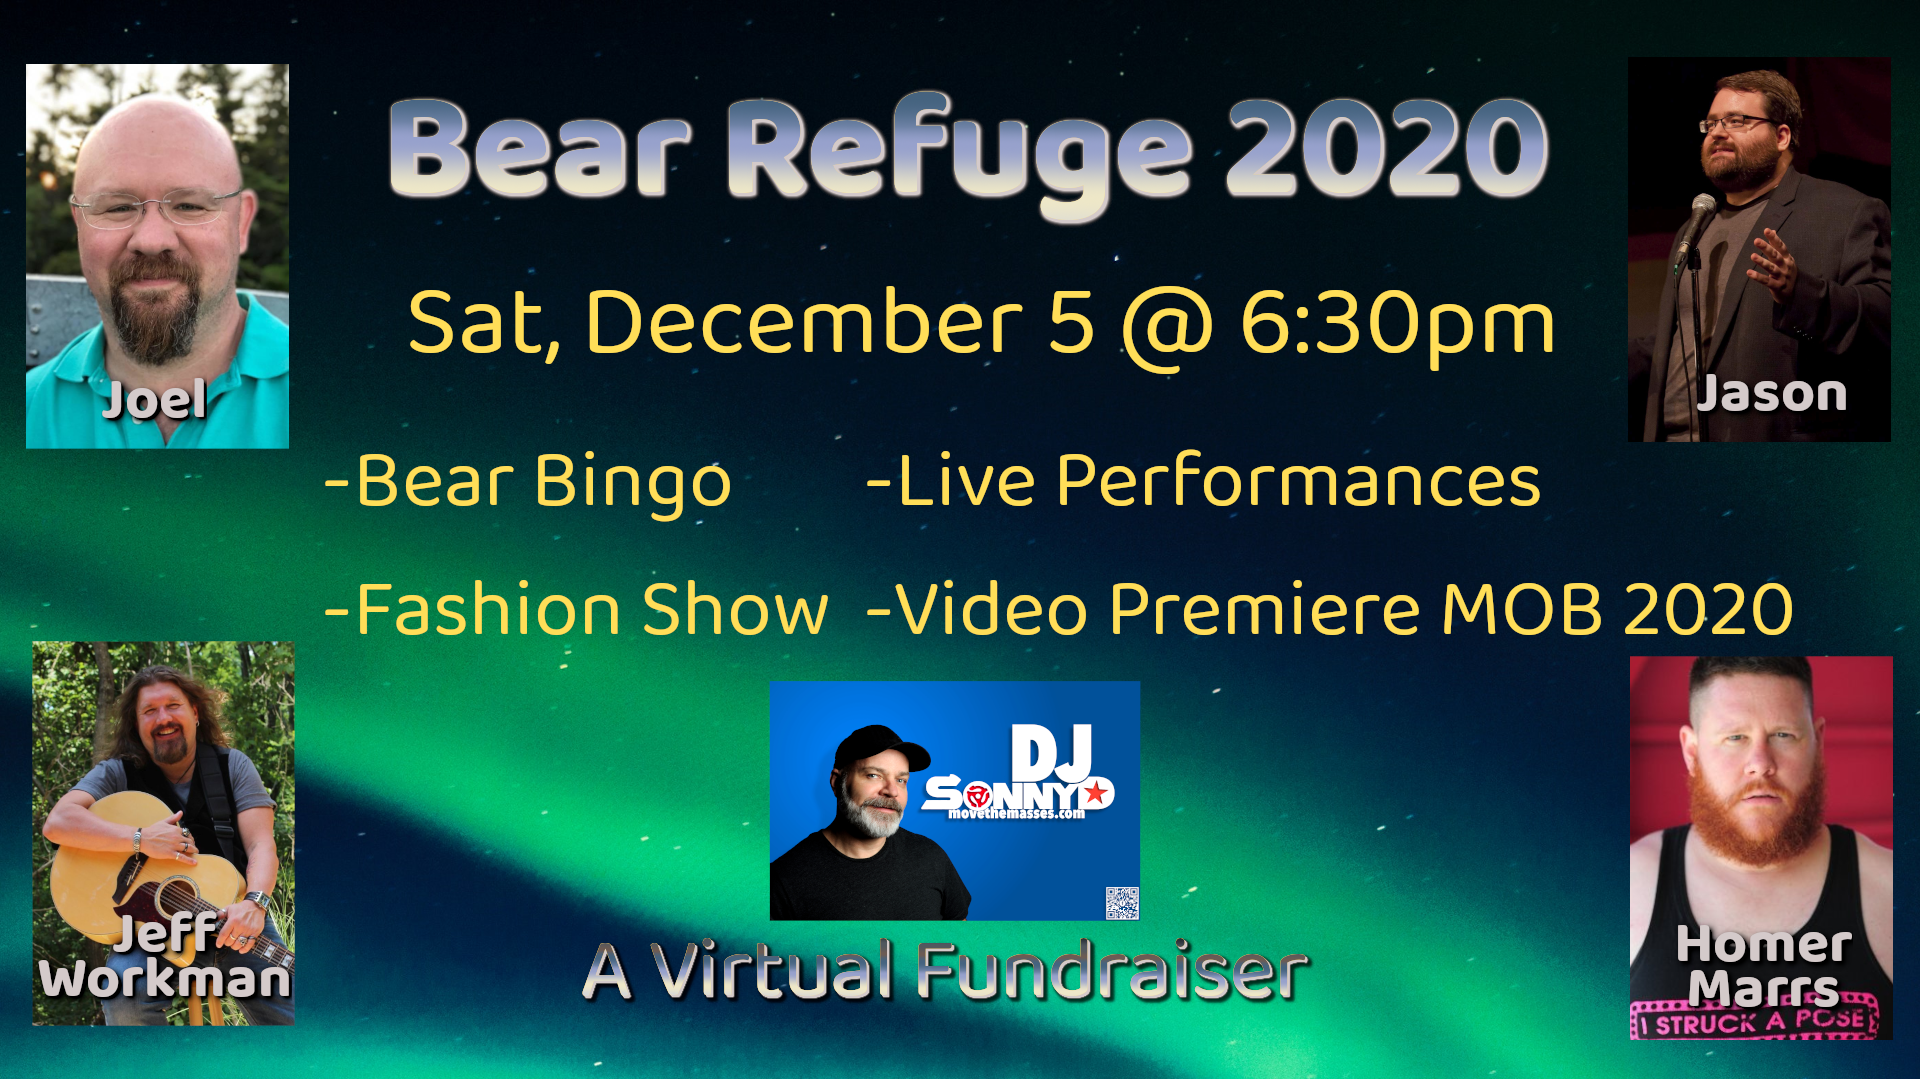 Bear Refuge 2020 Event